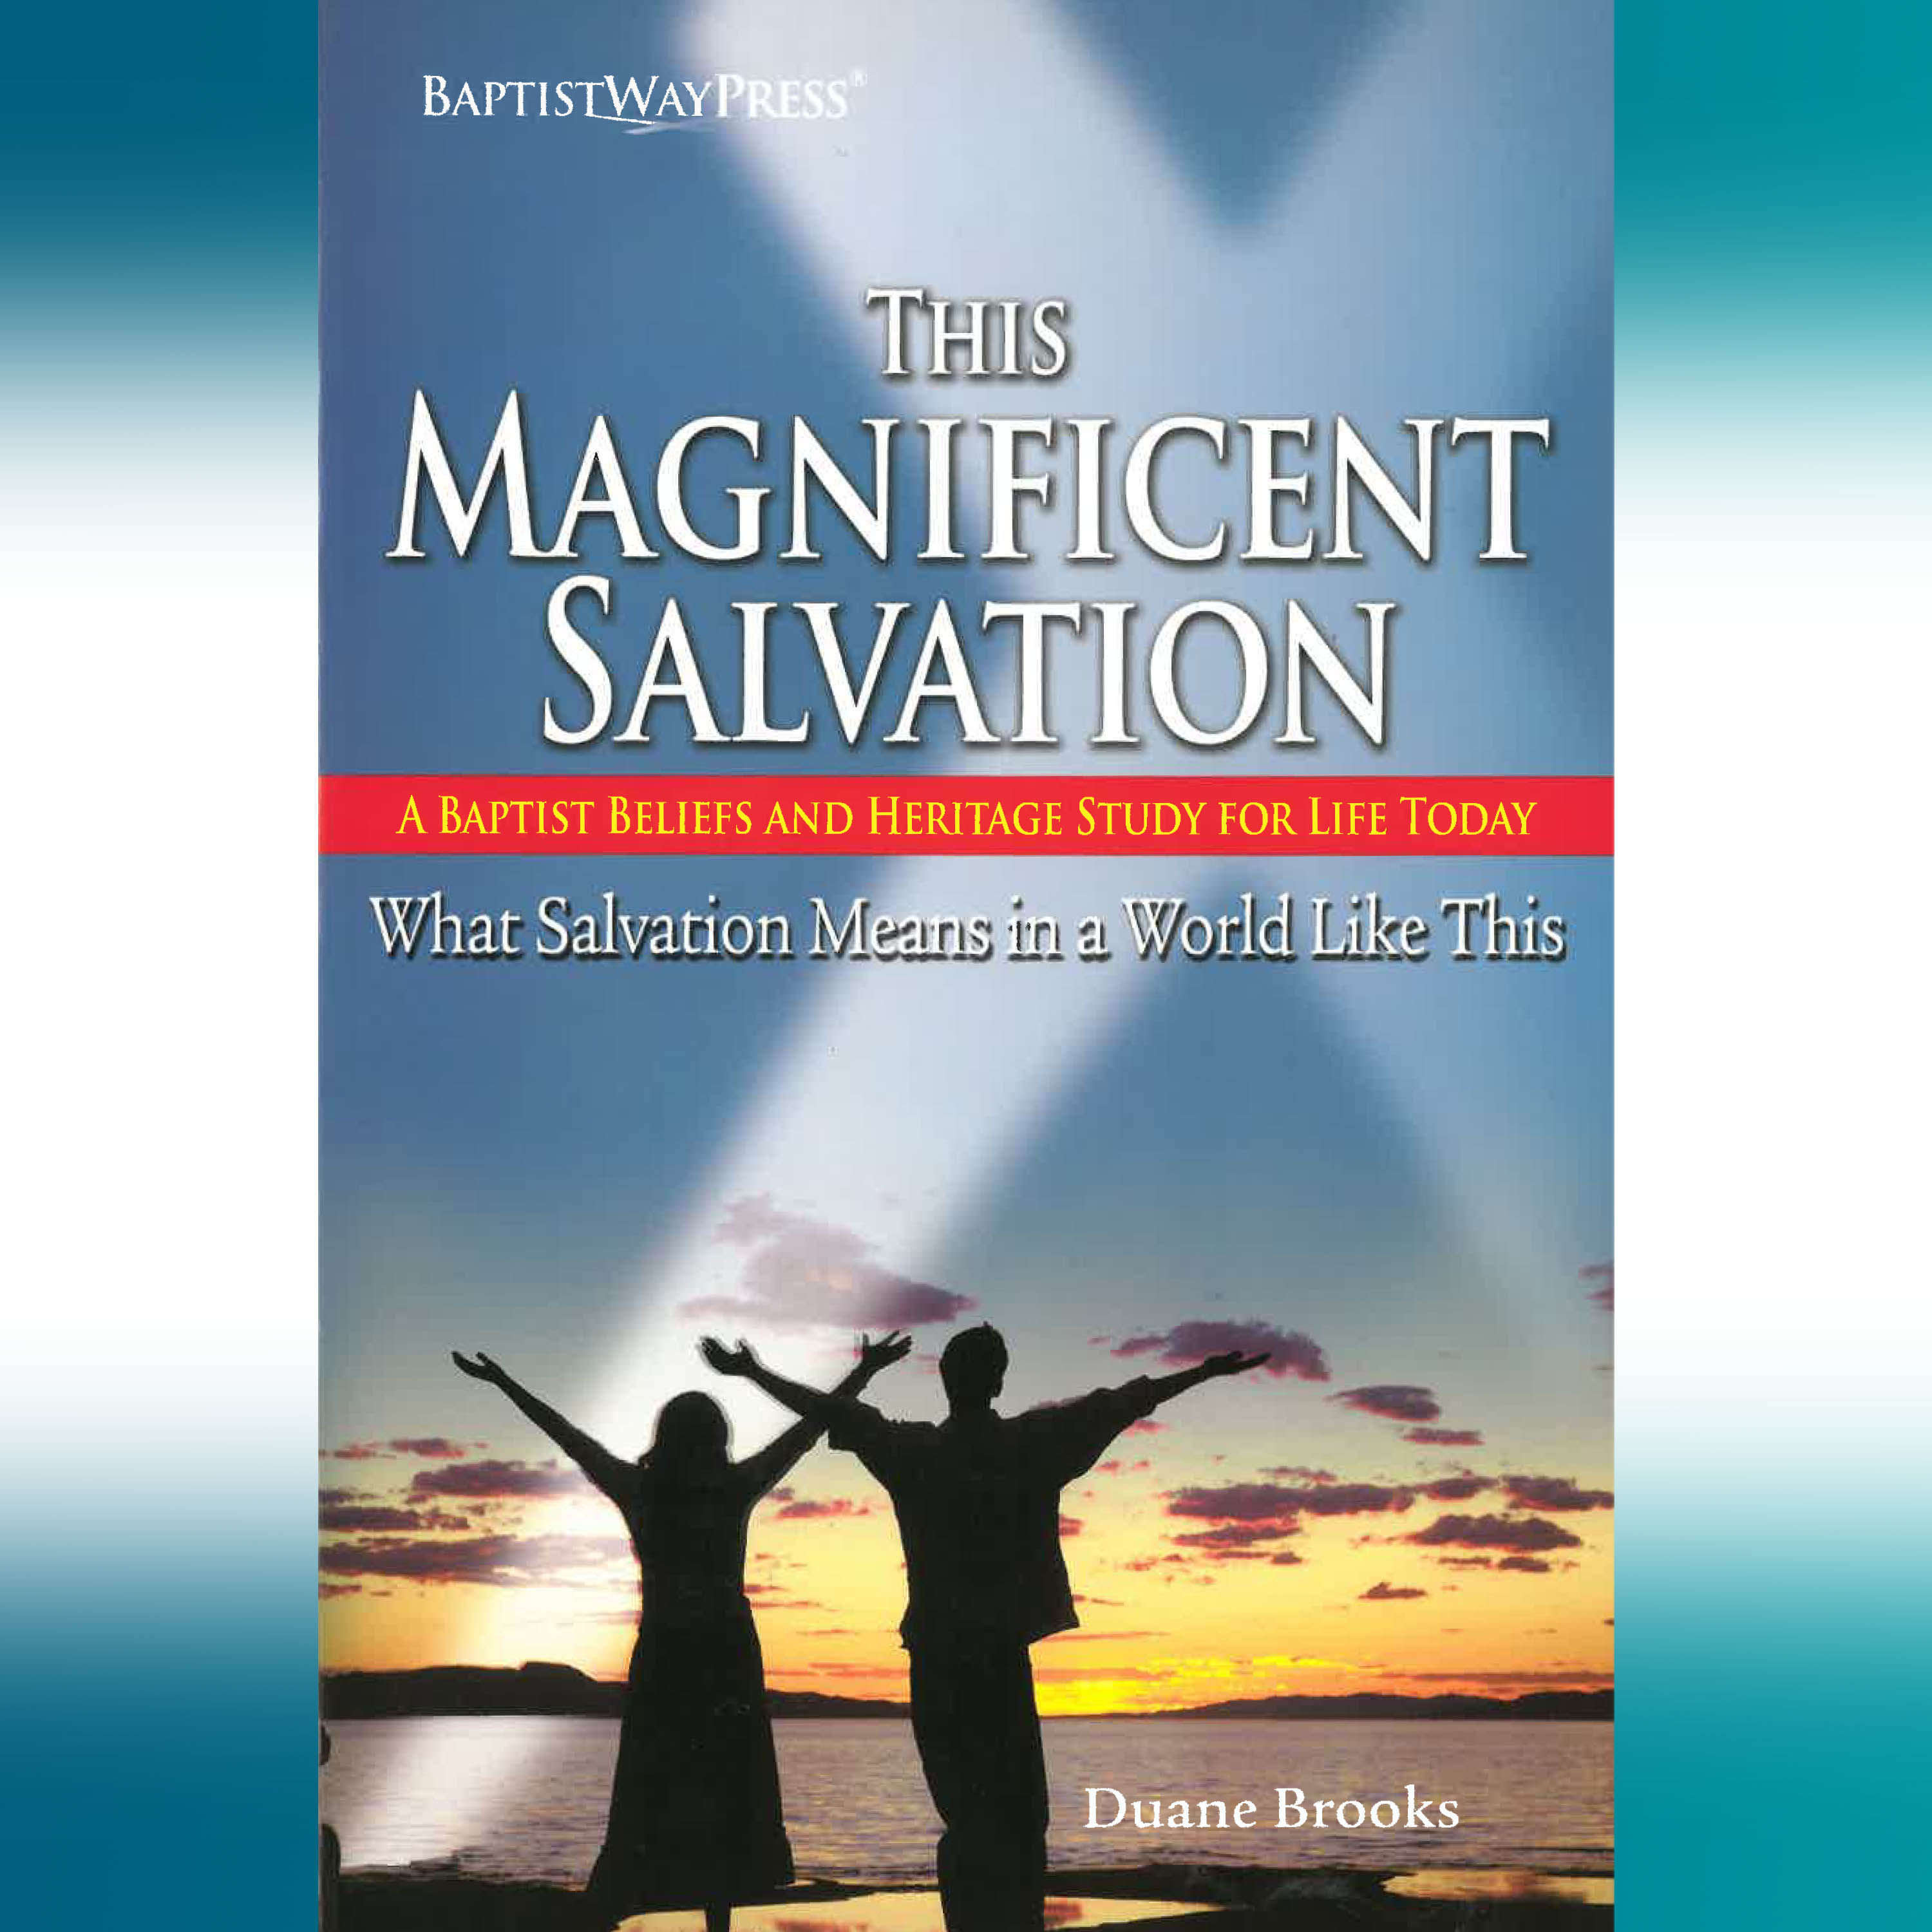 This Magnificent Salvation